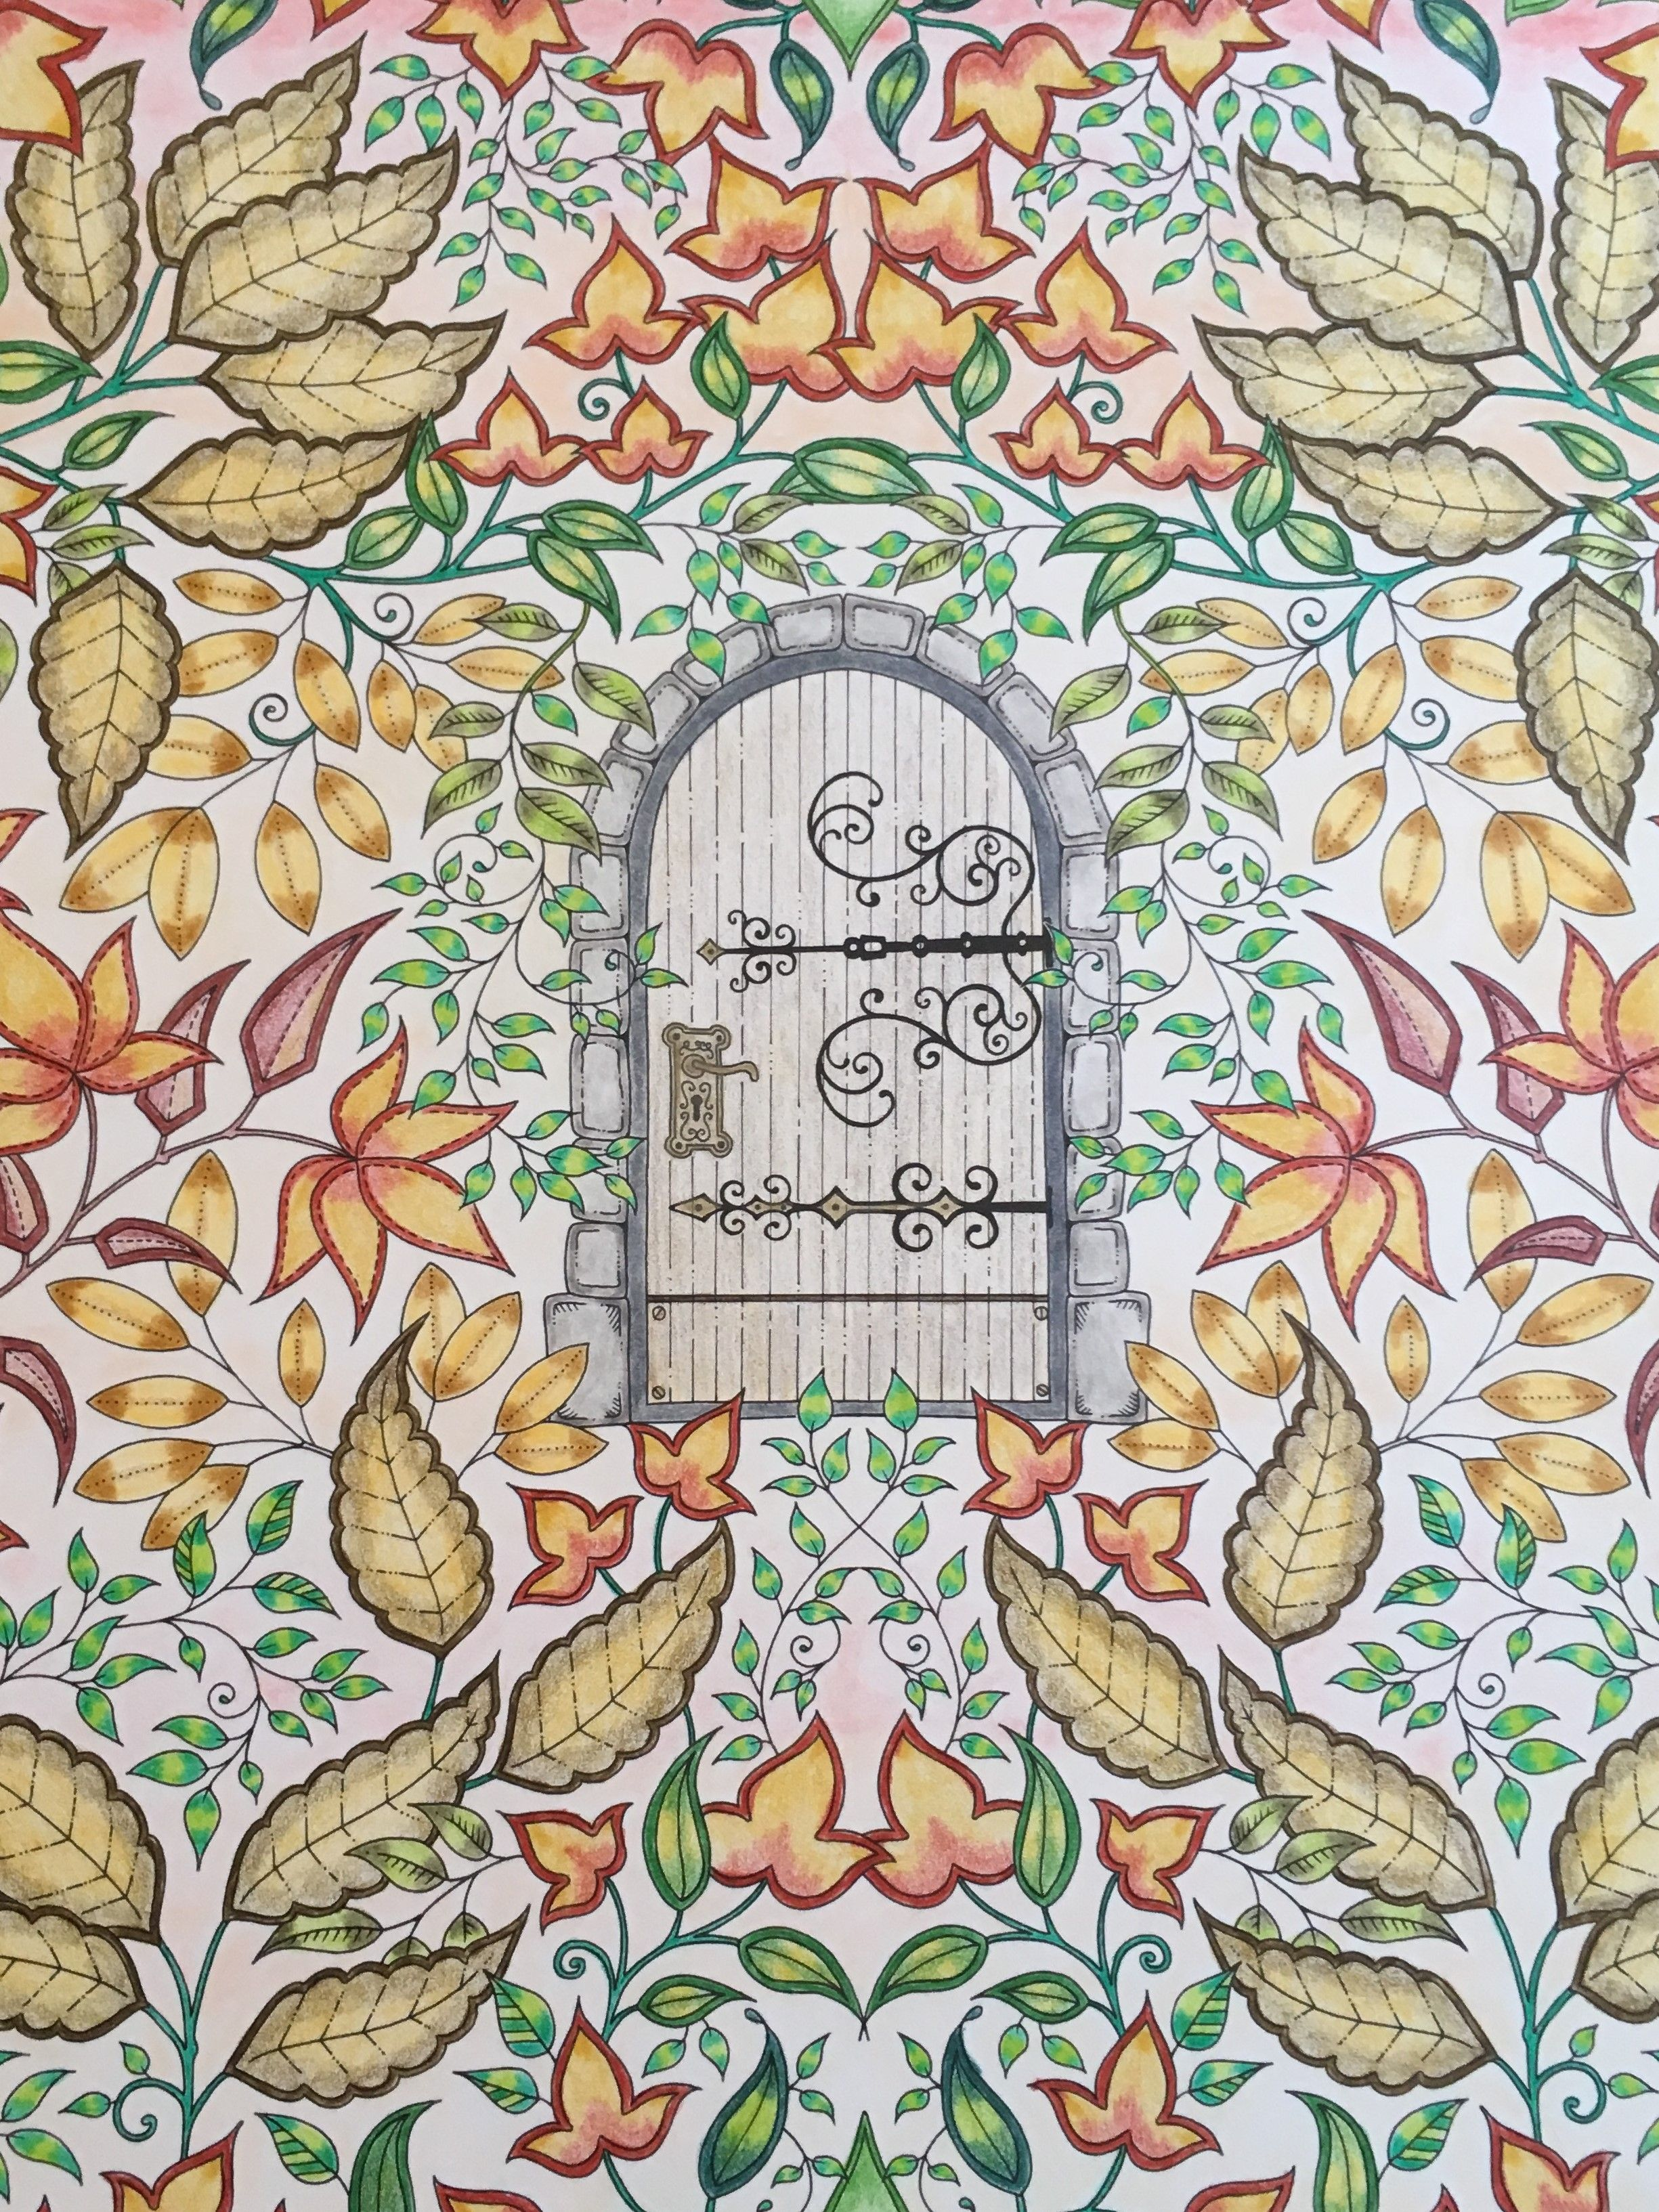 Coloured By Me From Johanna Basford S Secret Garden Artist S Edition Johannabasfor Secret Garden Coloring Book Johanna Basford Secret Garden Basford Coloring